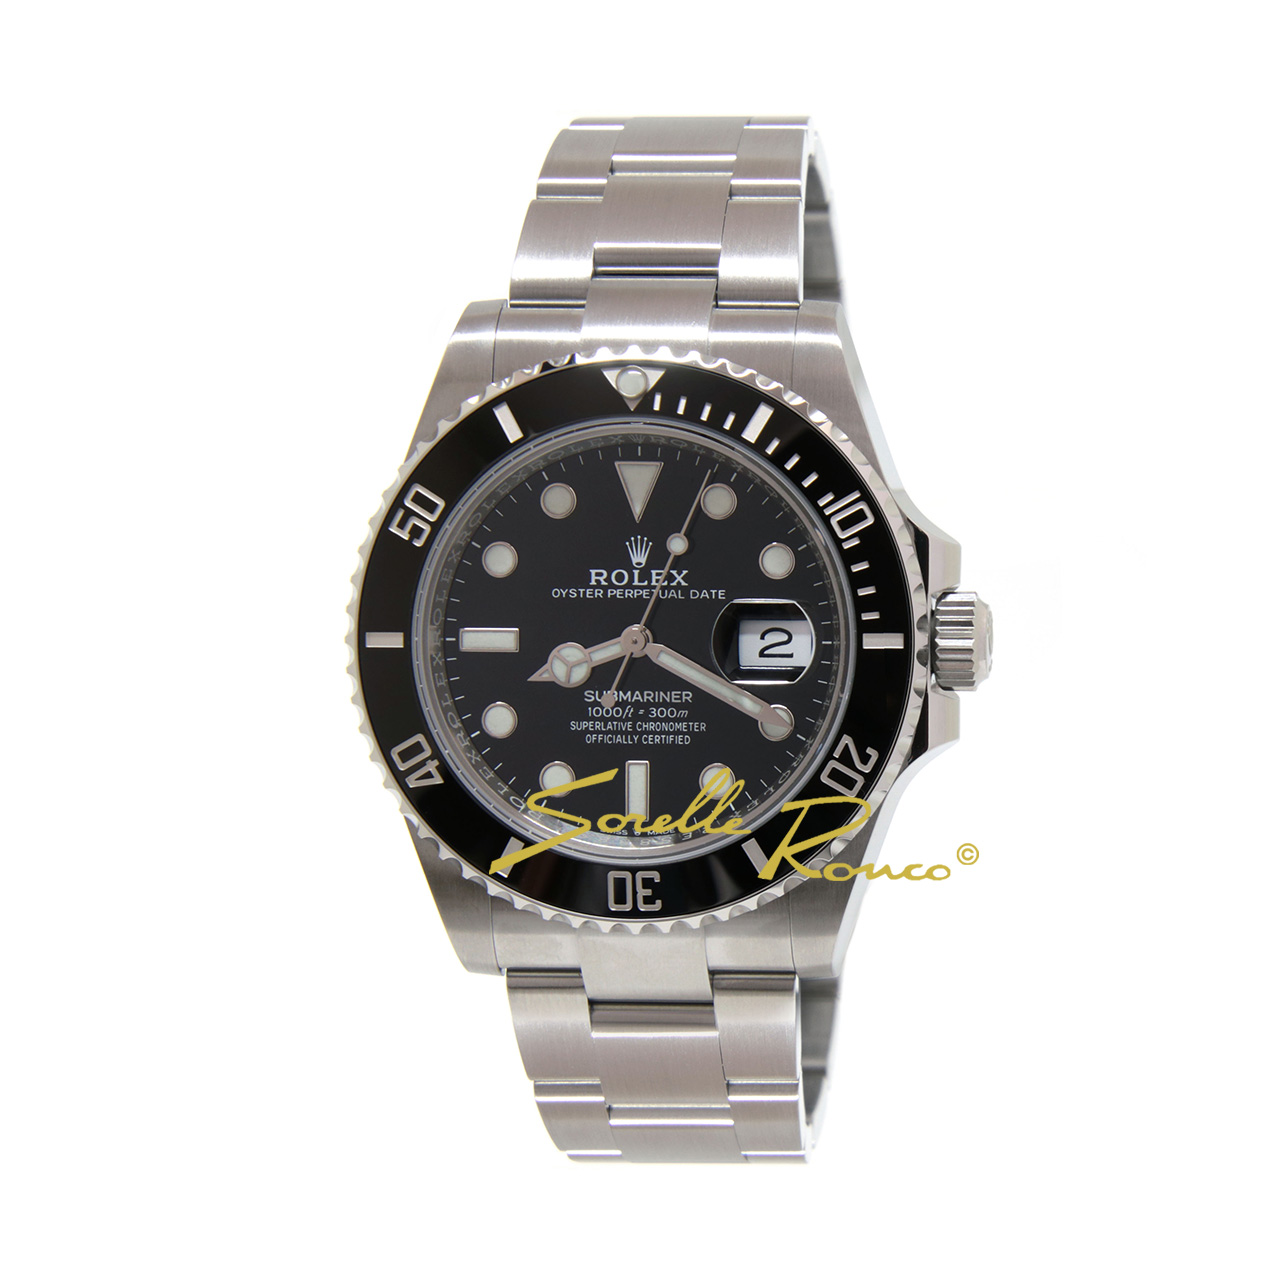 Submariner Date Ghiera Ceramica Nera 41mm - Nuovo Movimento -